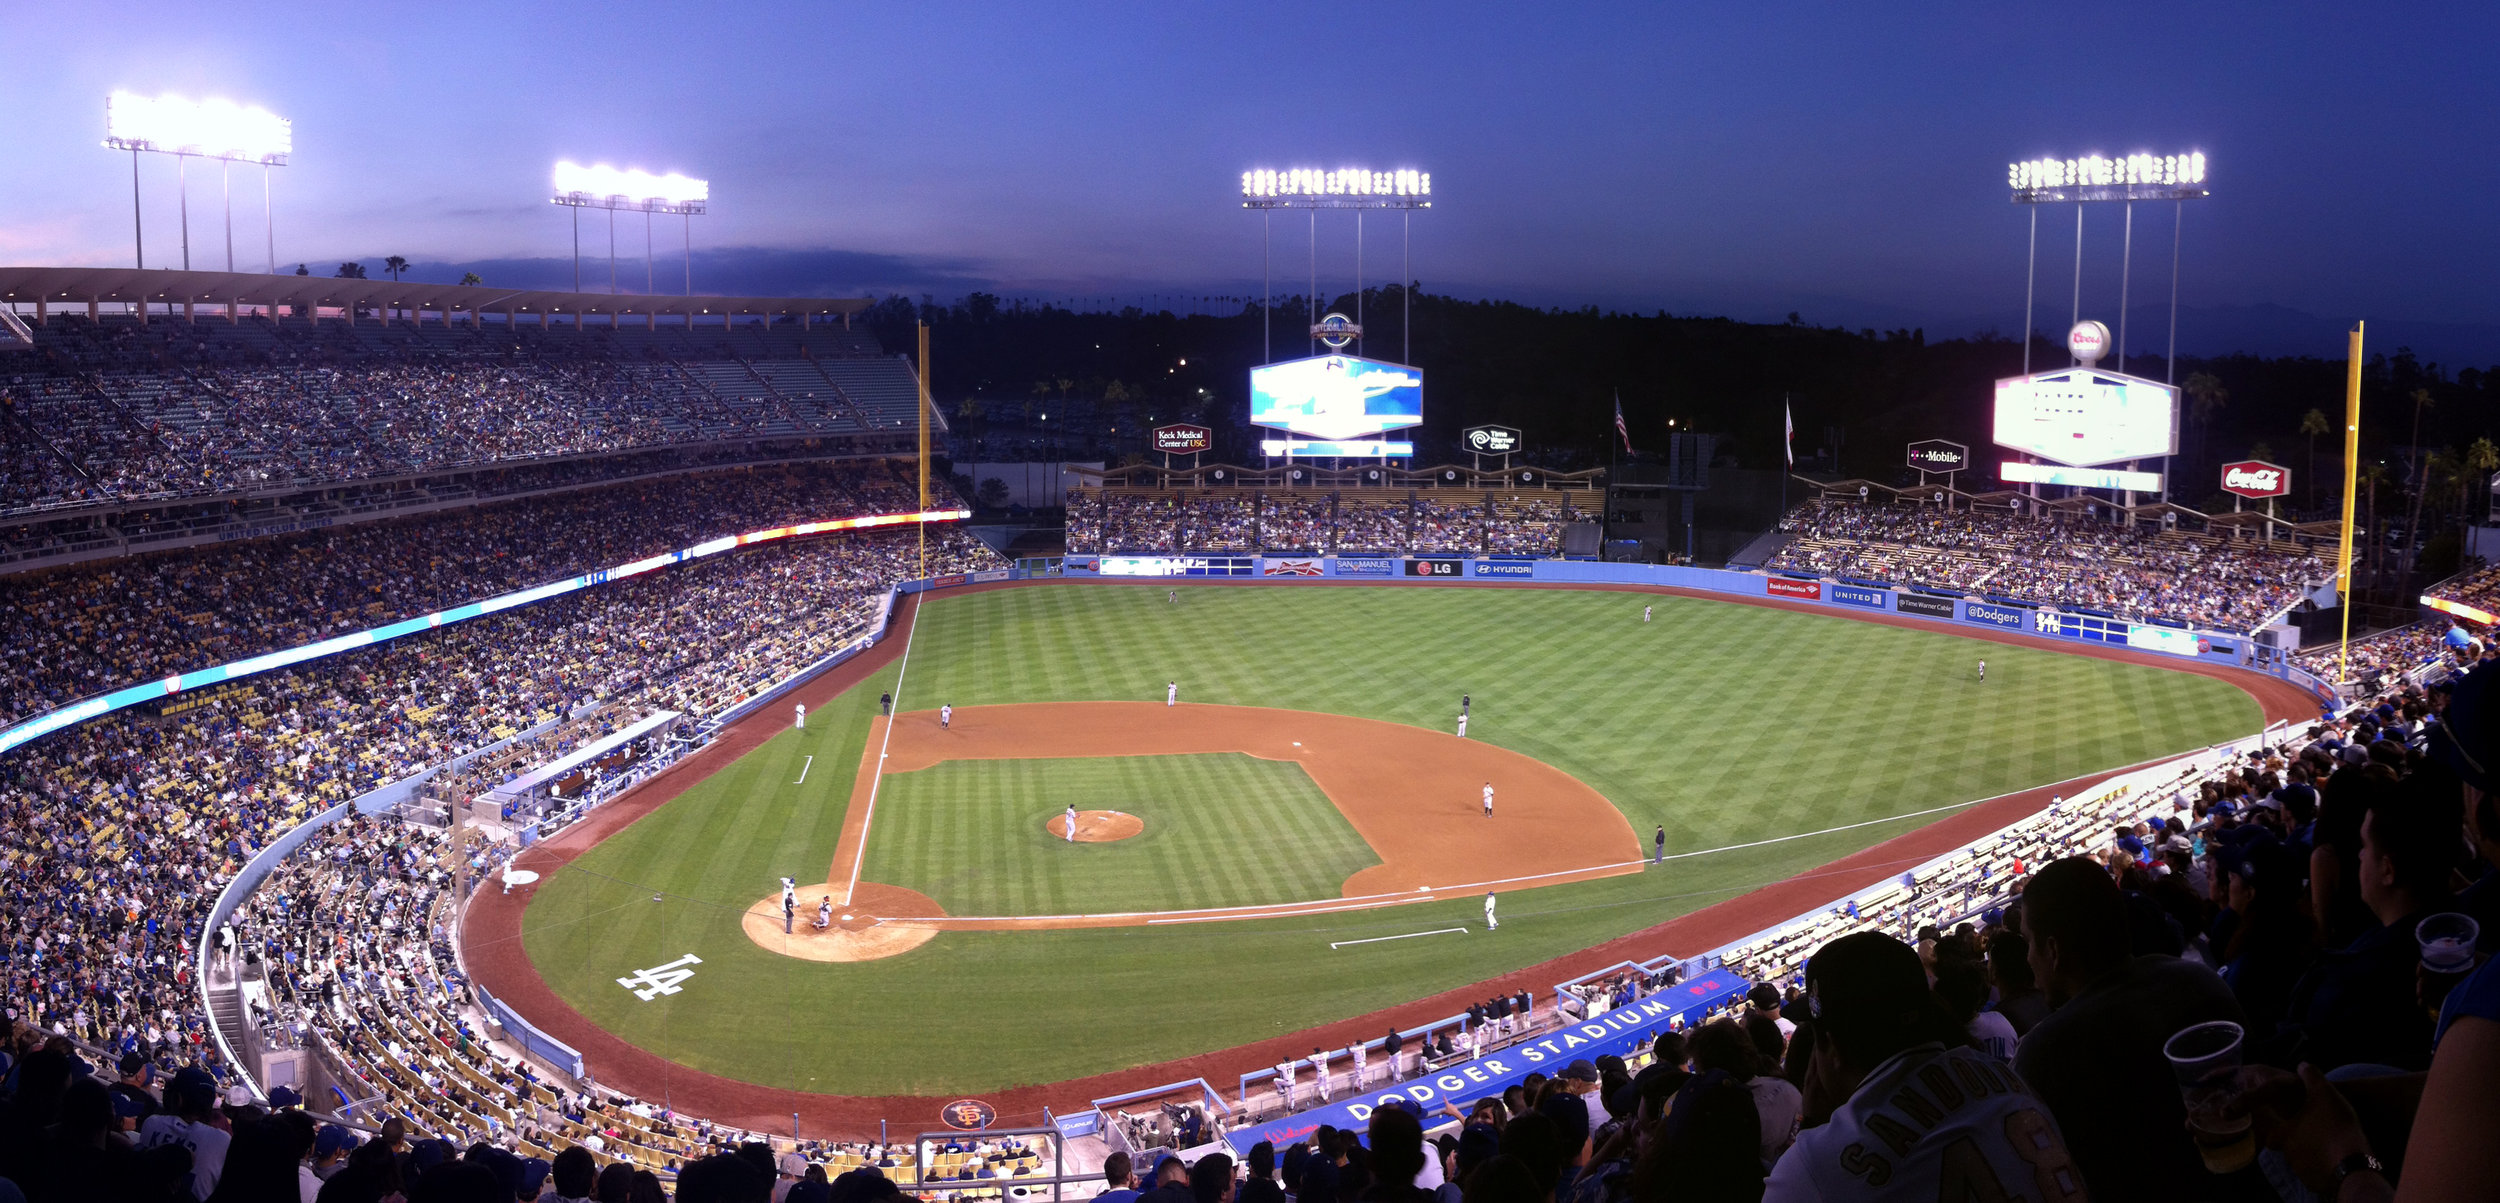 Dodger Stadium (Los Angeles) - Like most of my contemporaries (urban hipsters), I have a thing for mid-century modern design. Dodger Stadium is a lovely example of this architectural period. After my brother's wedding in San Francisco, my dad and I took a road trip to Yosemite and then down the coast to LA. We saw a game about a week after Yasiel Puig came up - and people were going NUTS. I think we saw him hit two home runs that day.